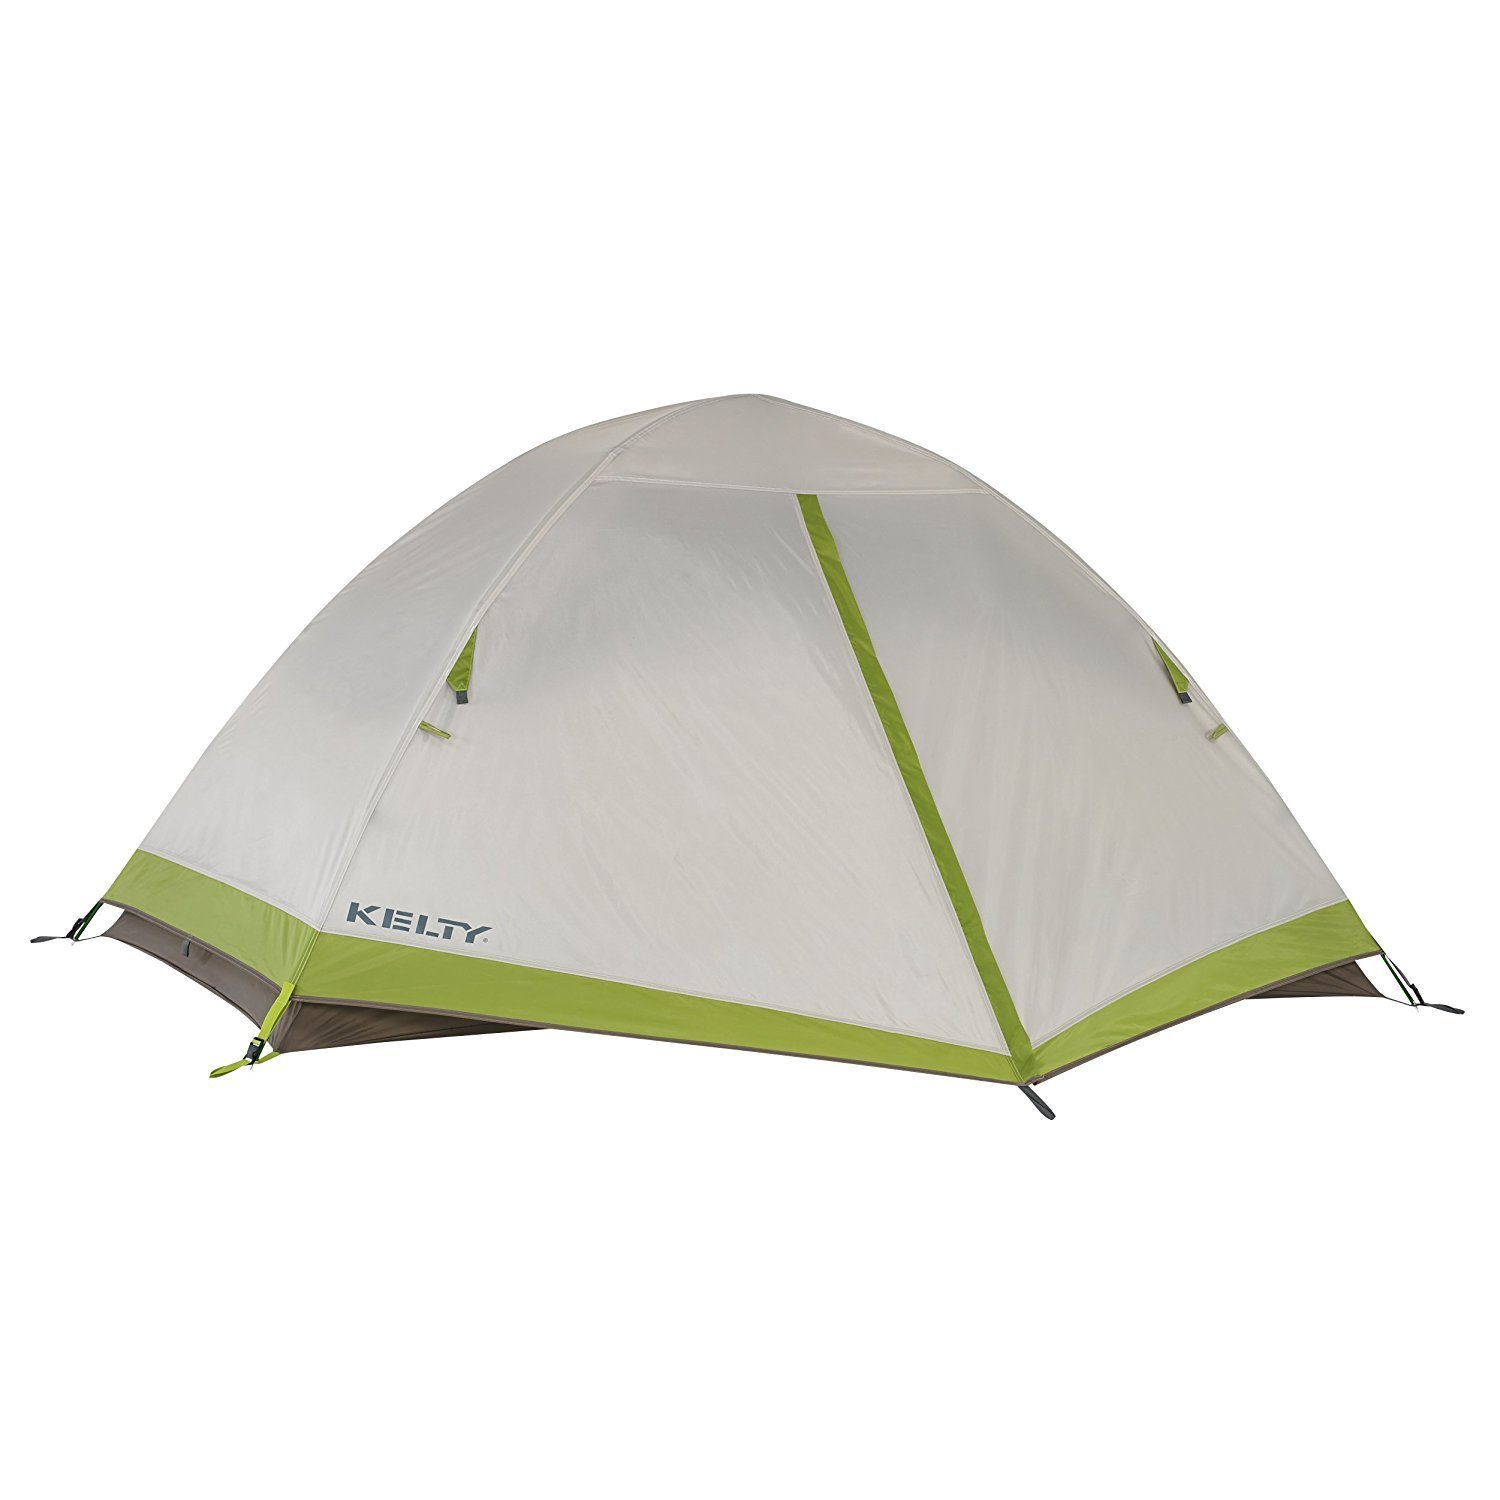 Kelty Salida 2 person, 3 season backpacking tent - AWARD WINNER!